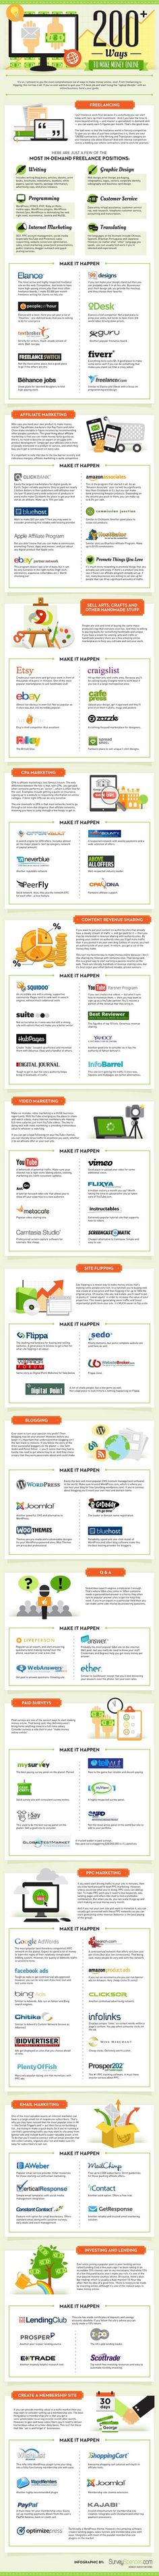 This Infographic Lists Over 200 Resources For Making Money Online | Lifehacker Australia